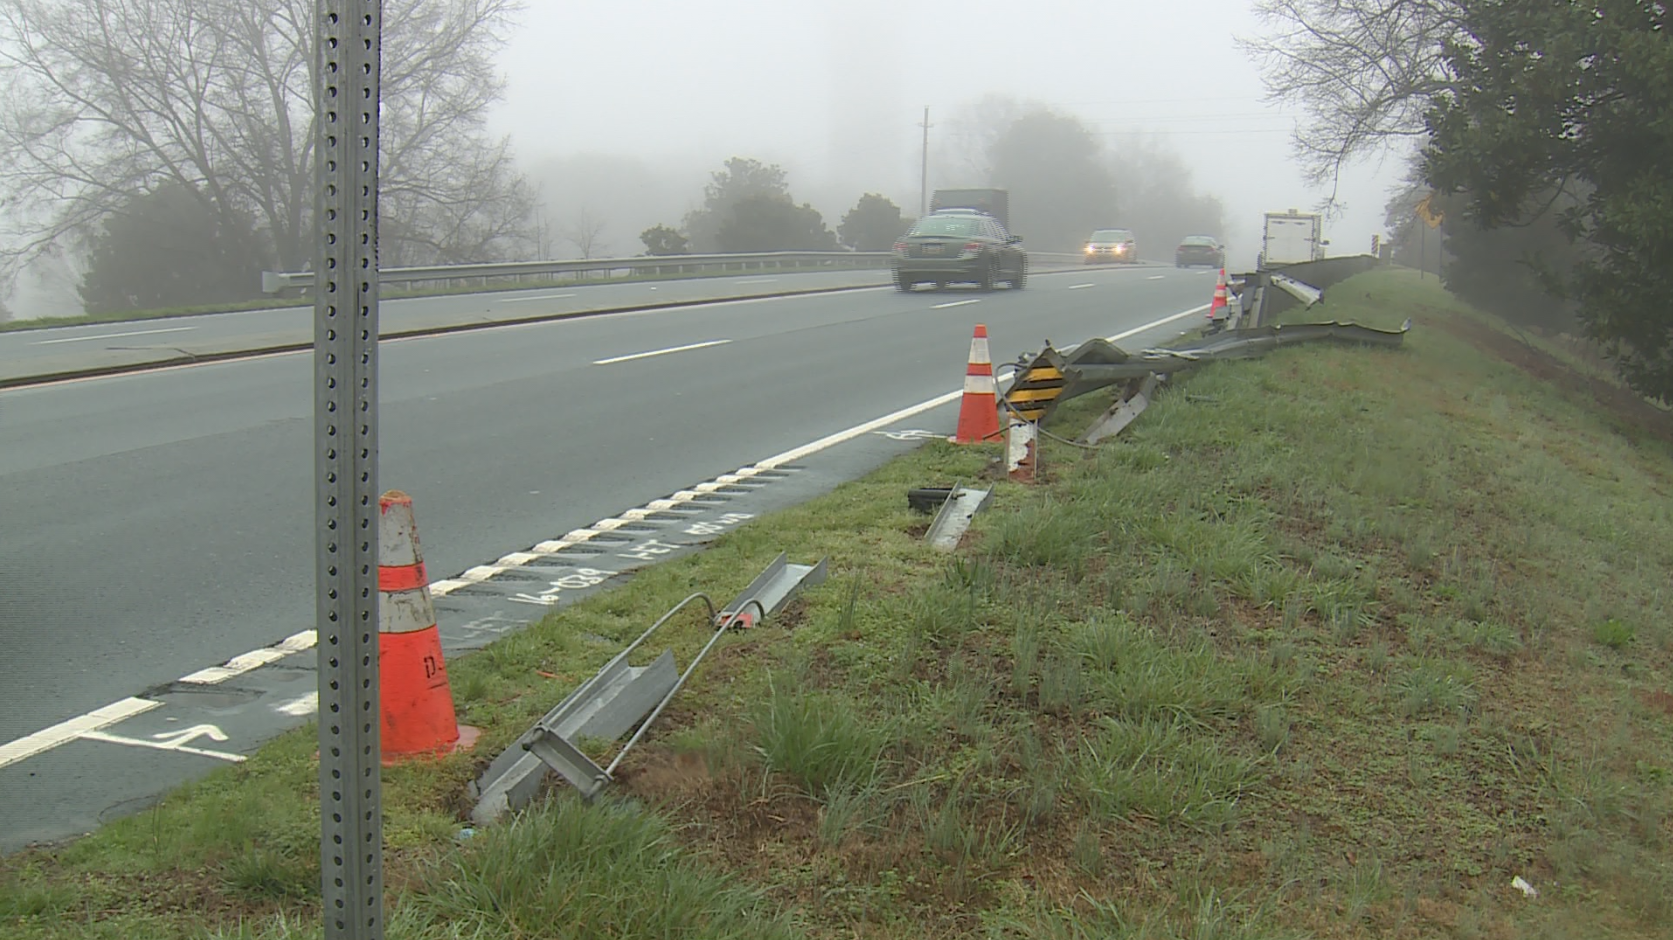 Damaged guardrail in Easley